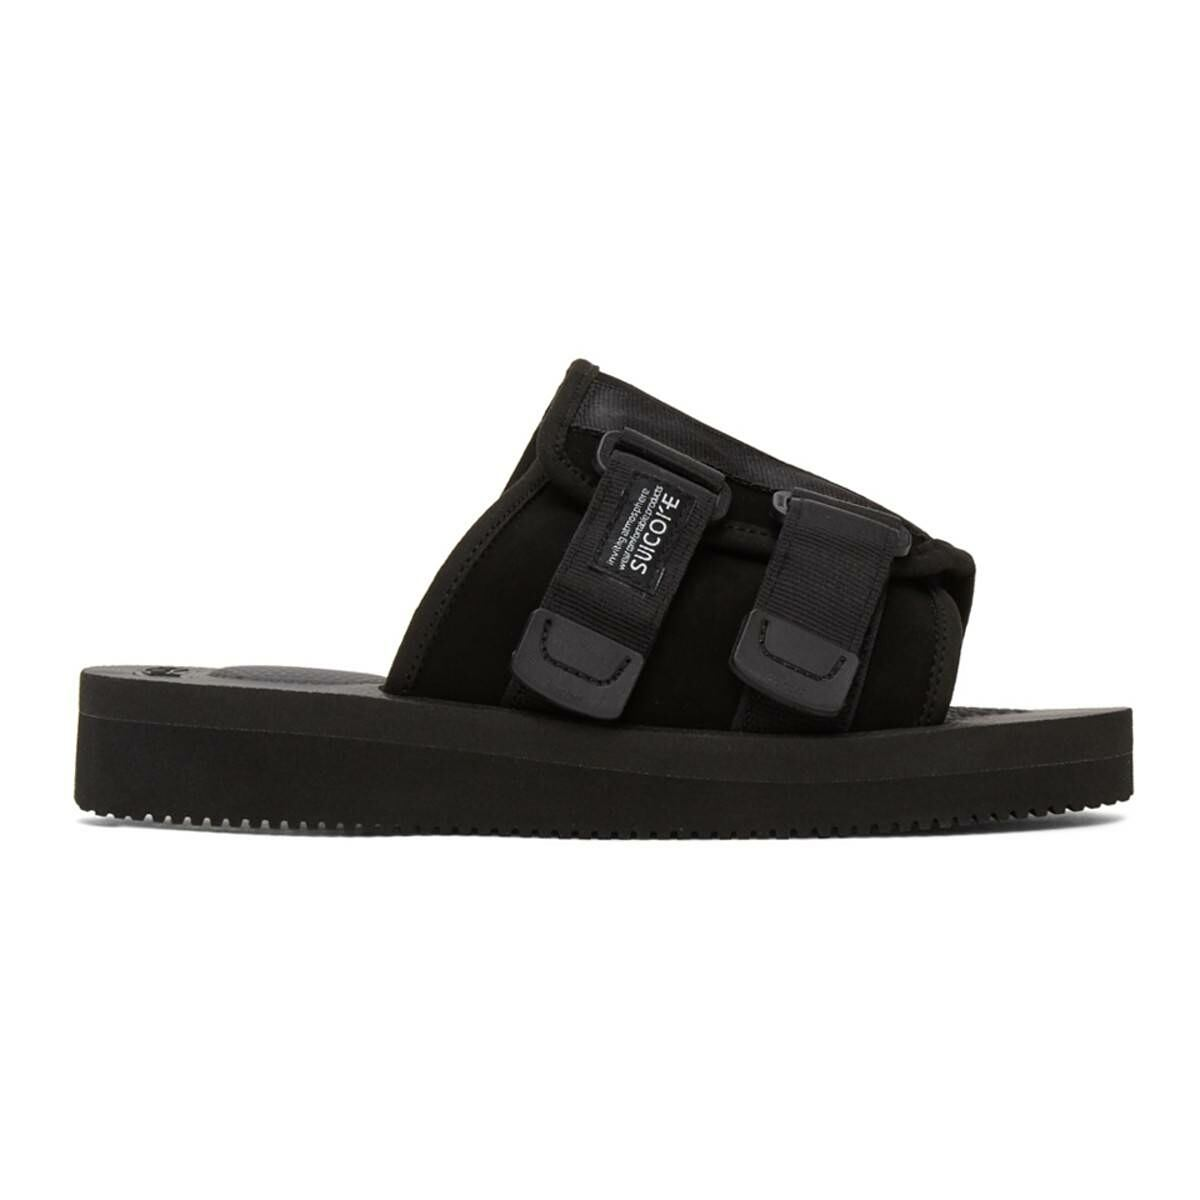 Suicoke Black Kaw-VS Sandals Ssense USA MEN Men SHOES Mens SANDALS